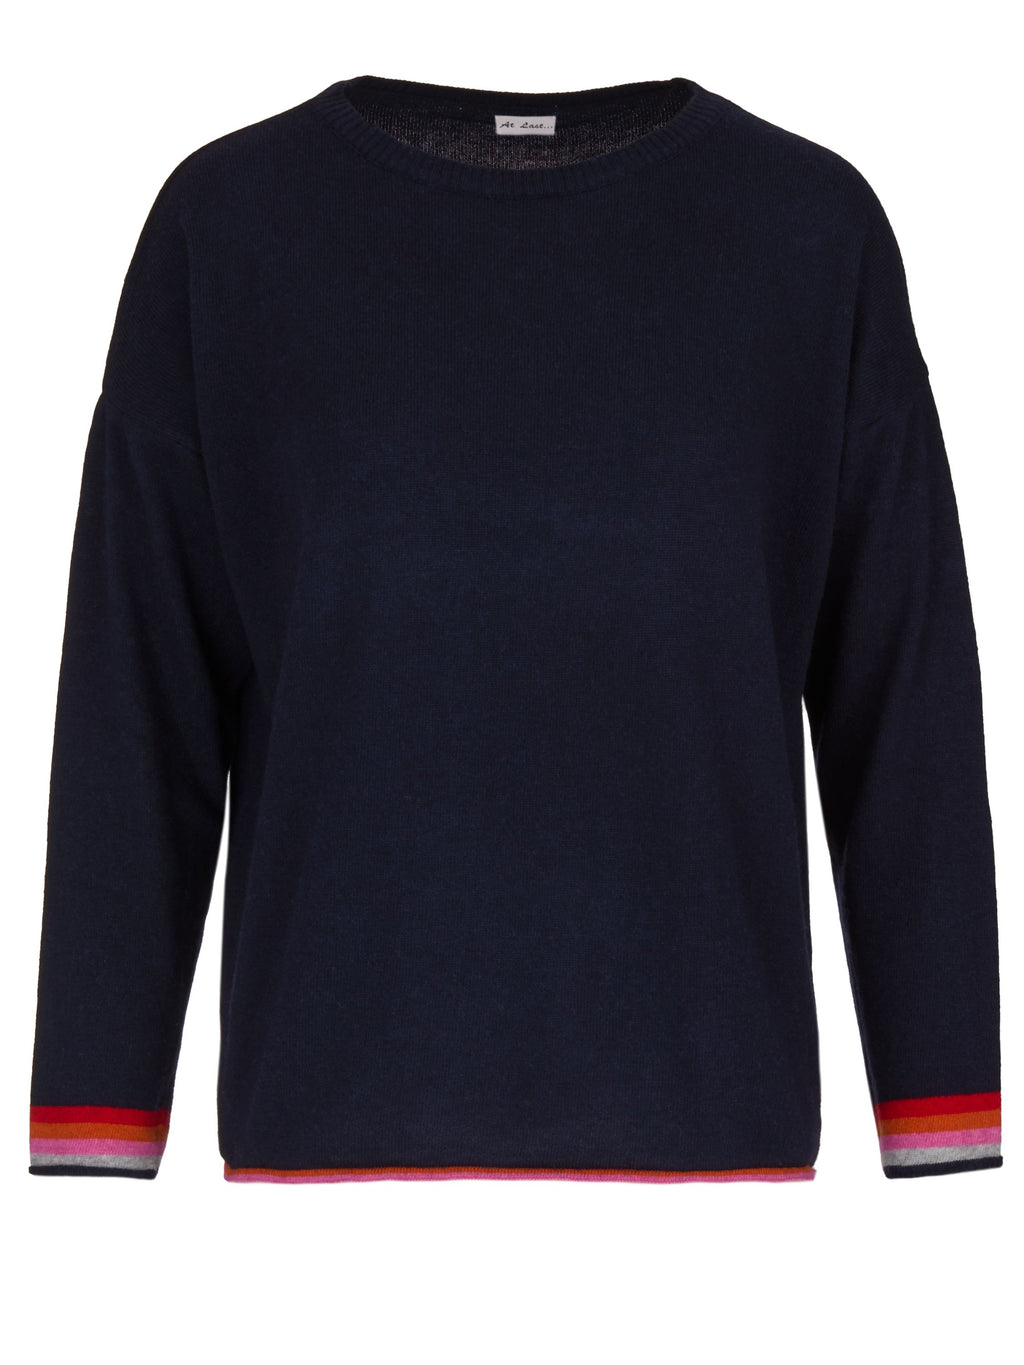 Cashmere Sweater- Navy and Pink Elbow